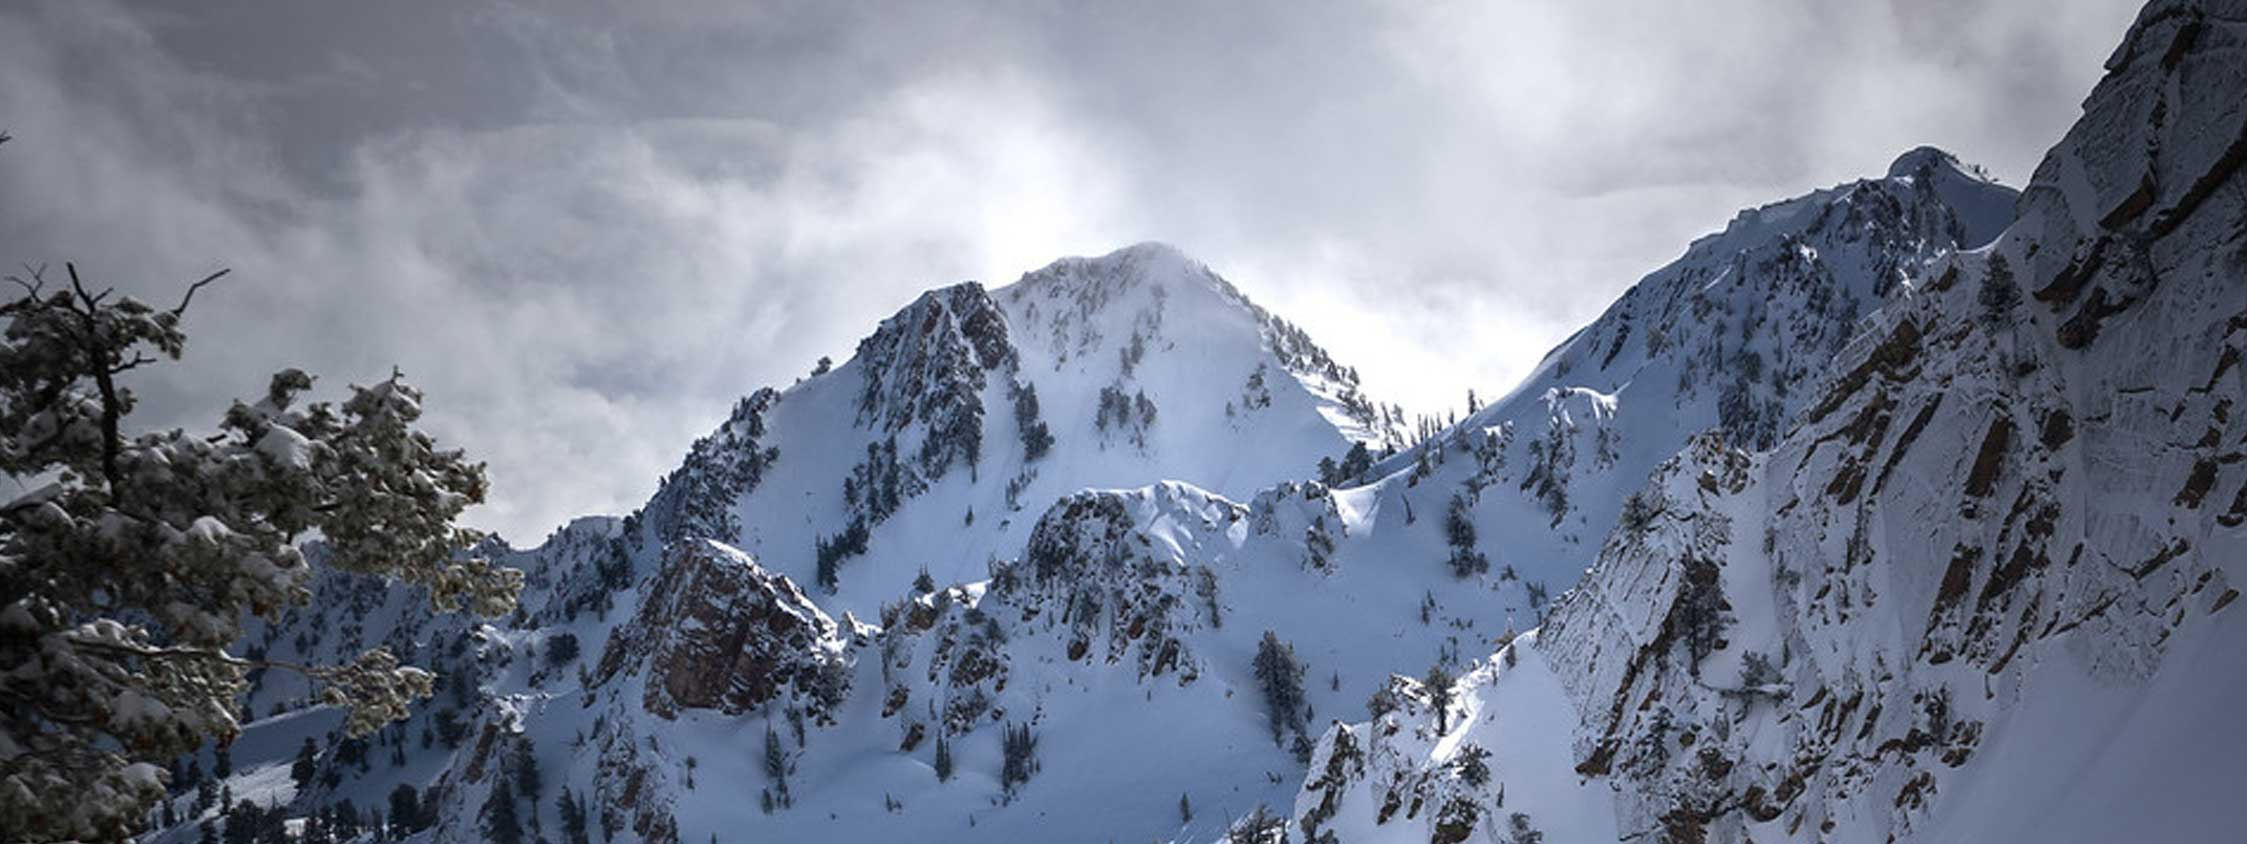 Equipment Rentals for Snowbasin, Powder Mountain, and Nordic